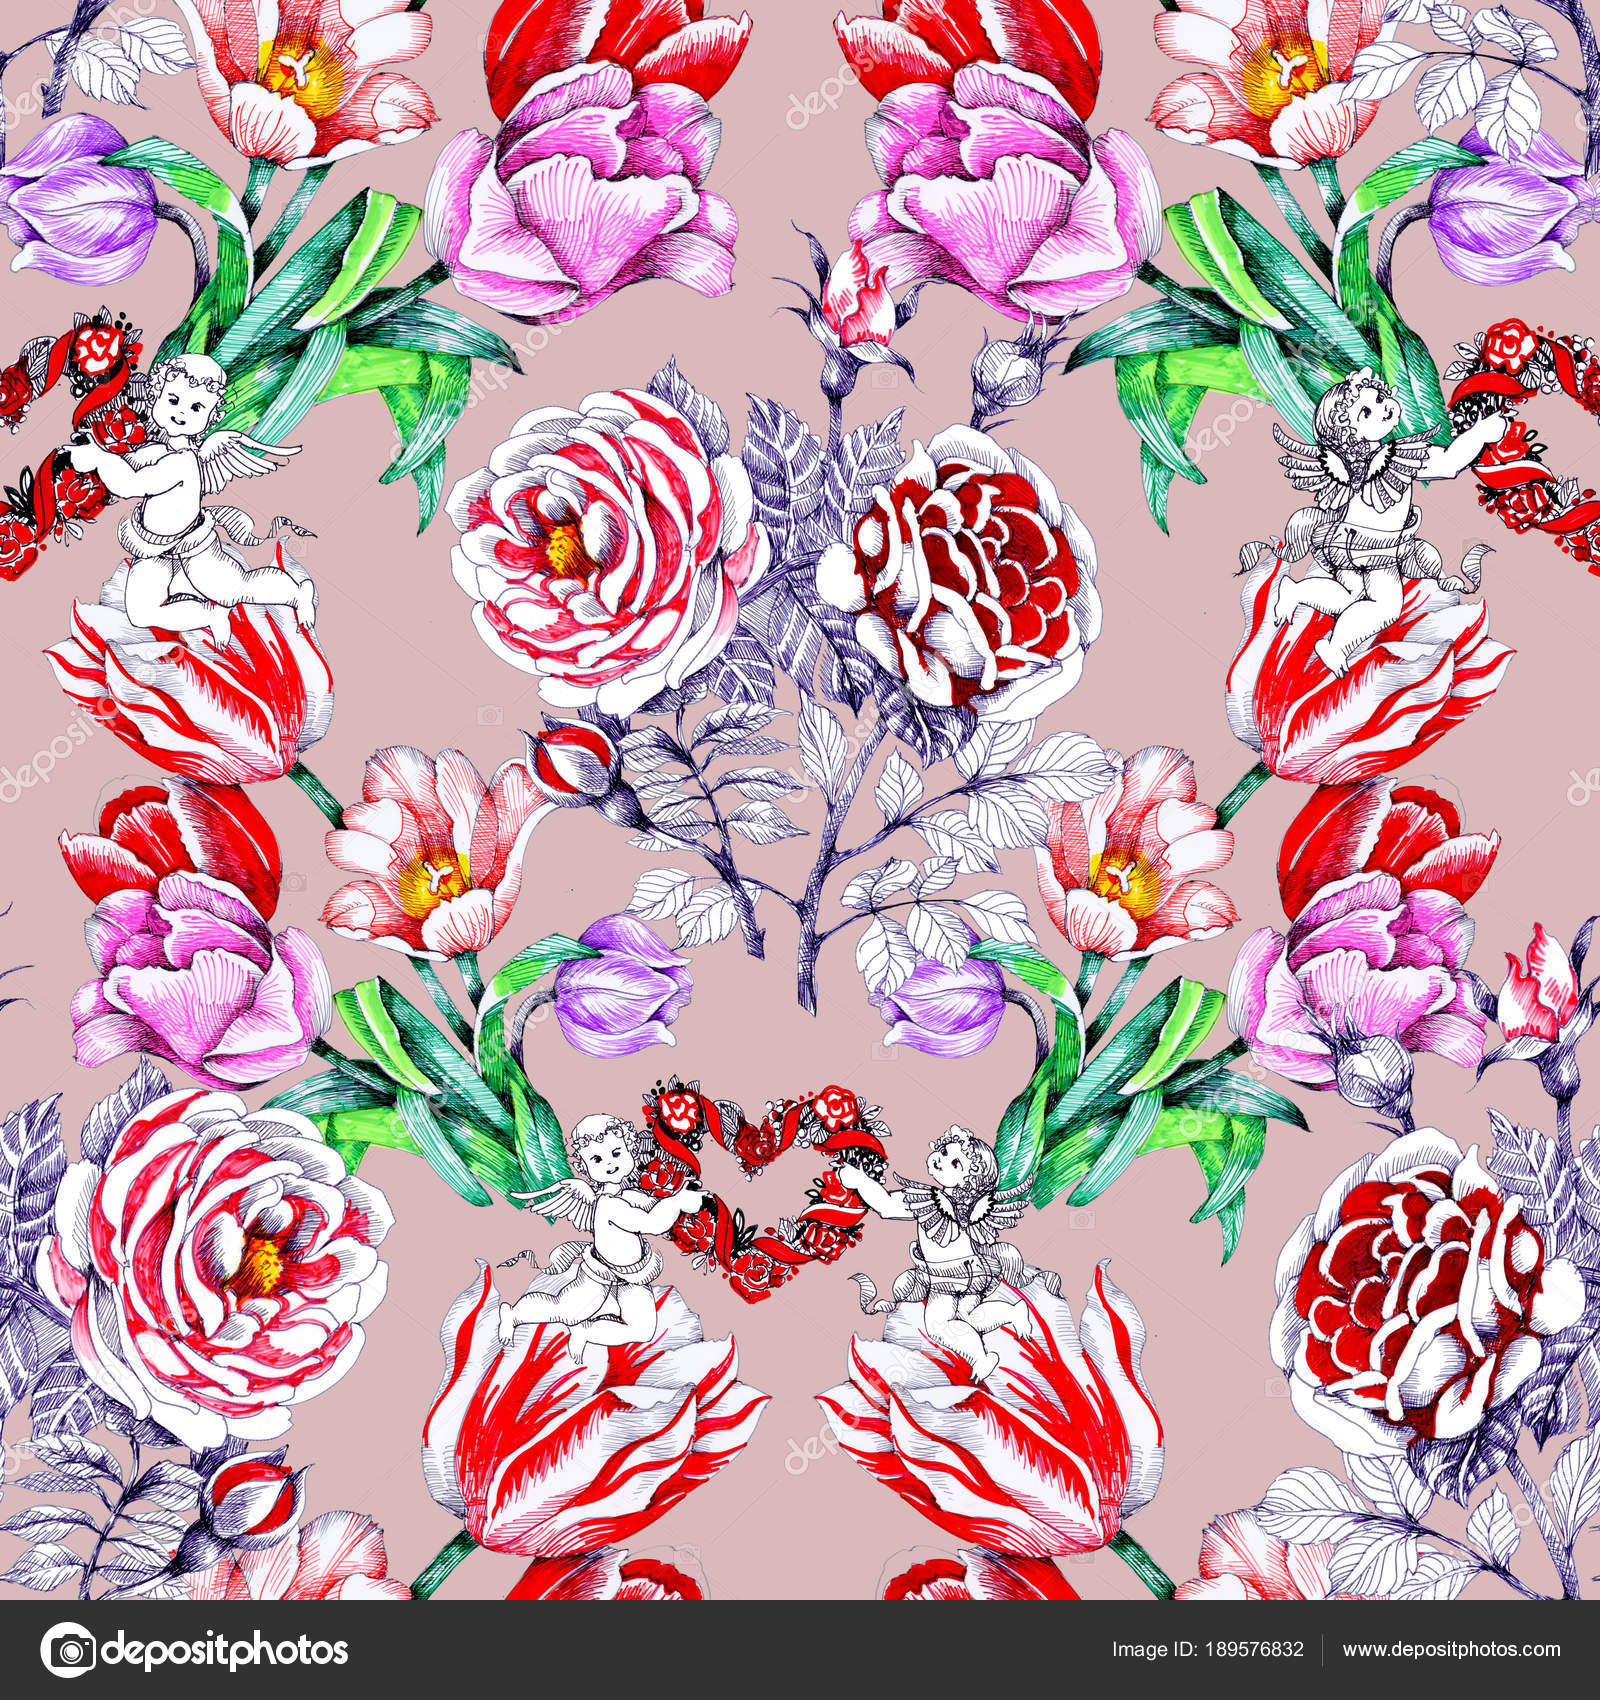 Pattern beautiful colorful flowers hearts angels stock photo pattern beautiful colorful flowers hearts angels stock photo izmirmasajfo Choice Image